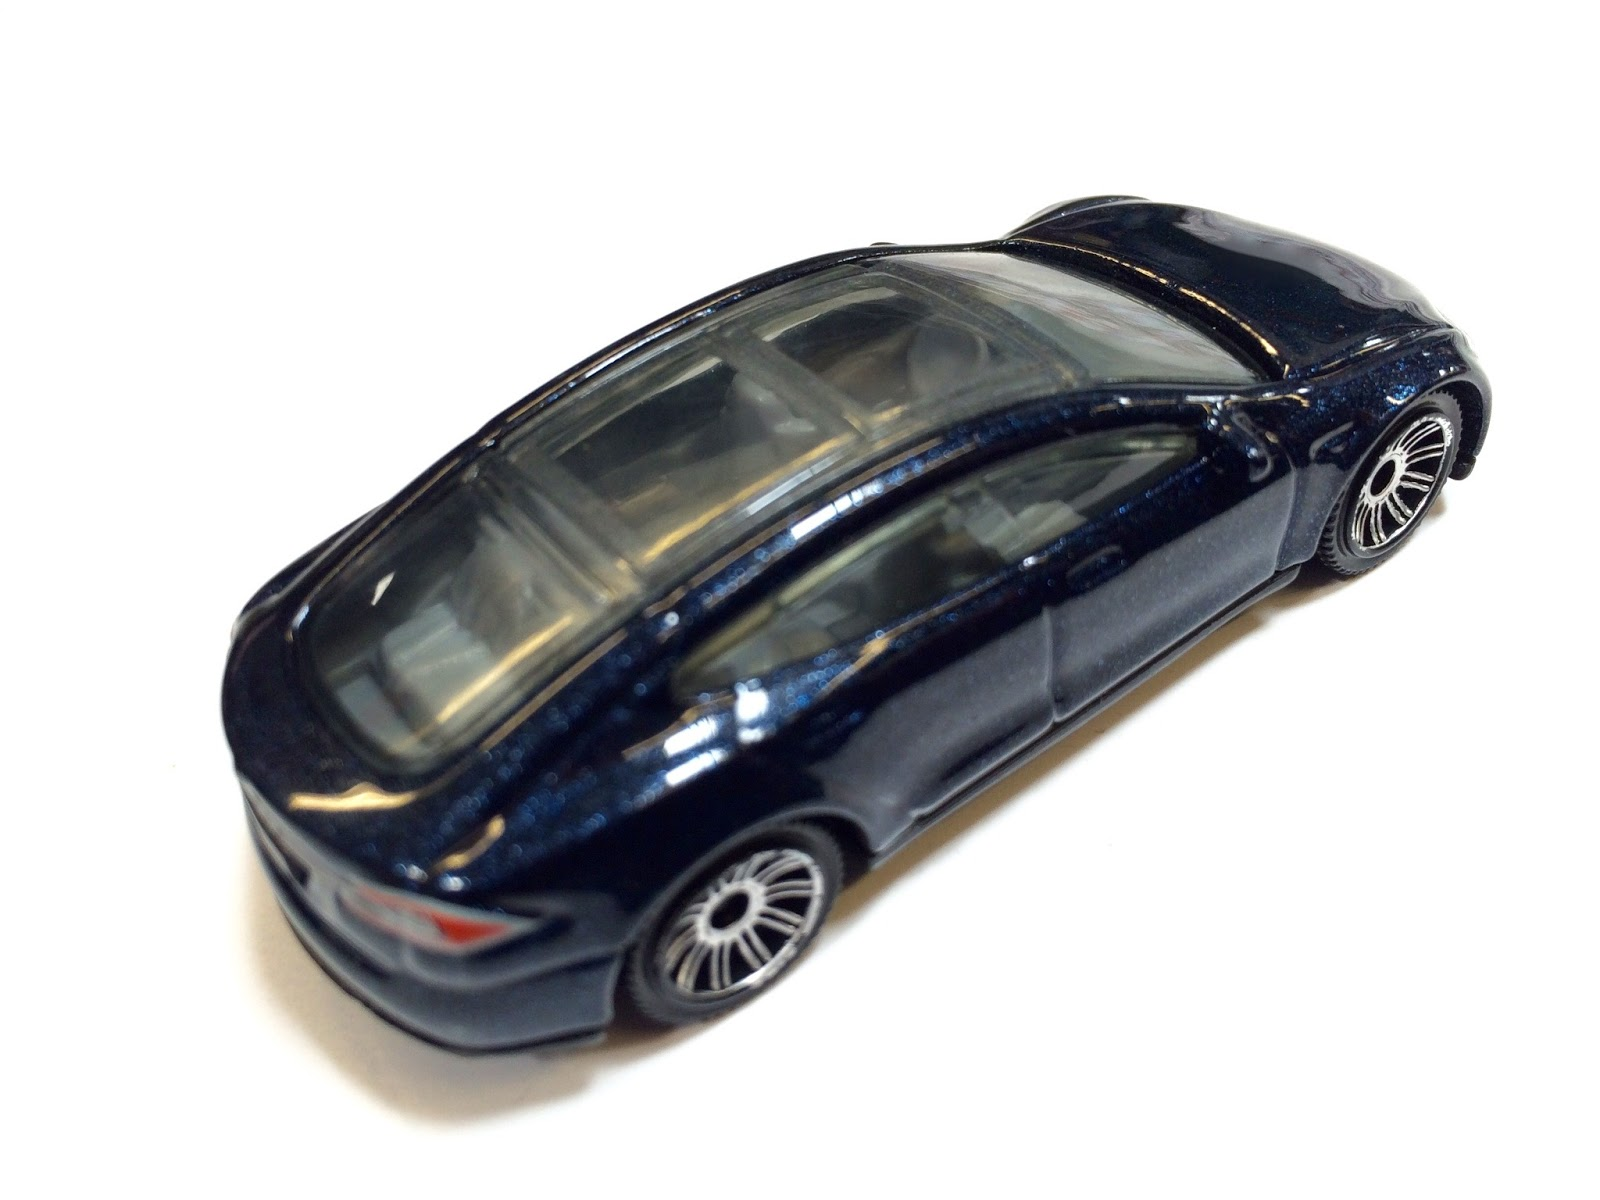 Just Unveiled 2015 Matchbox Tesla Model S recolor in Midnight Blue